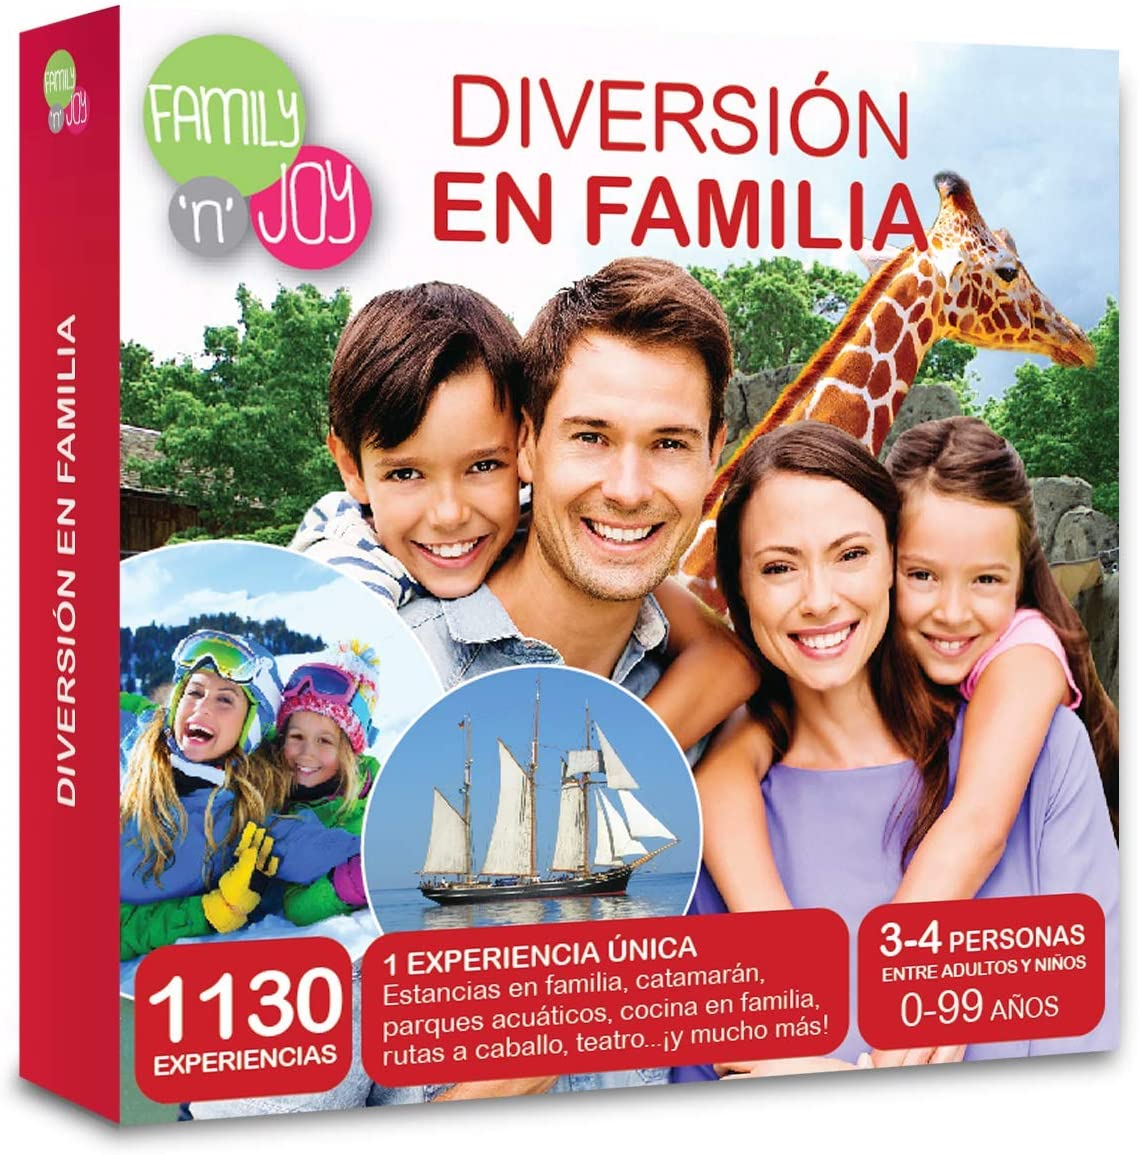 family n joy diversion en familia